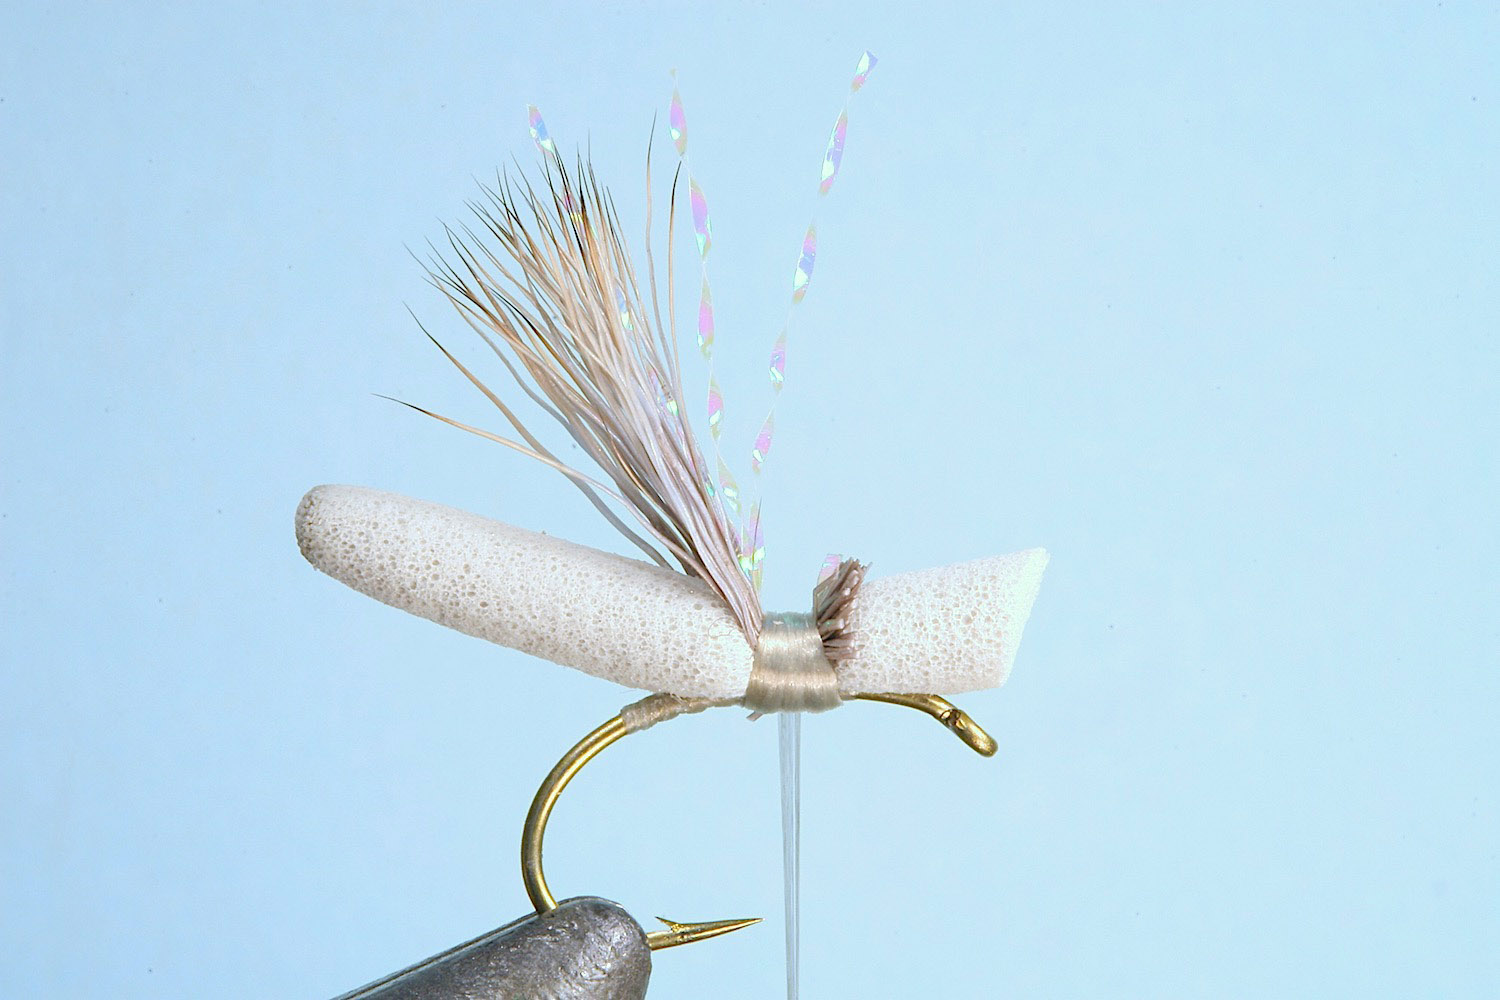 Showing step 4 of tying sequence for hot foam hopper fly pattern